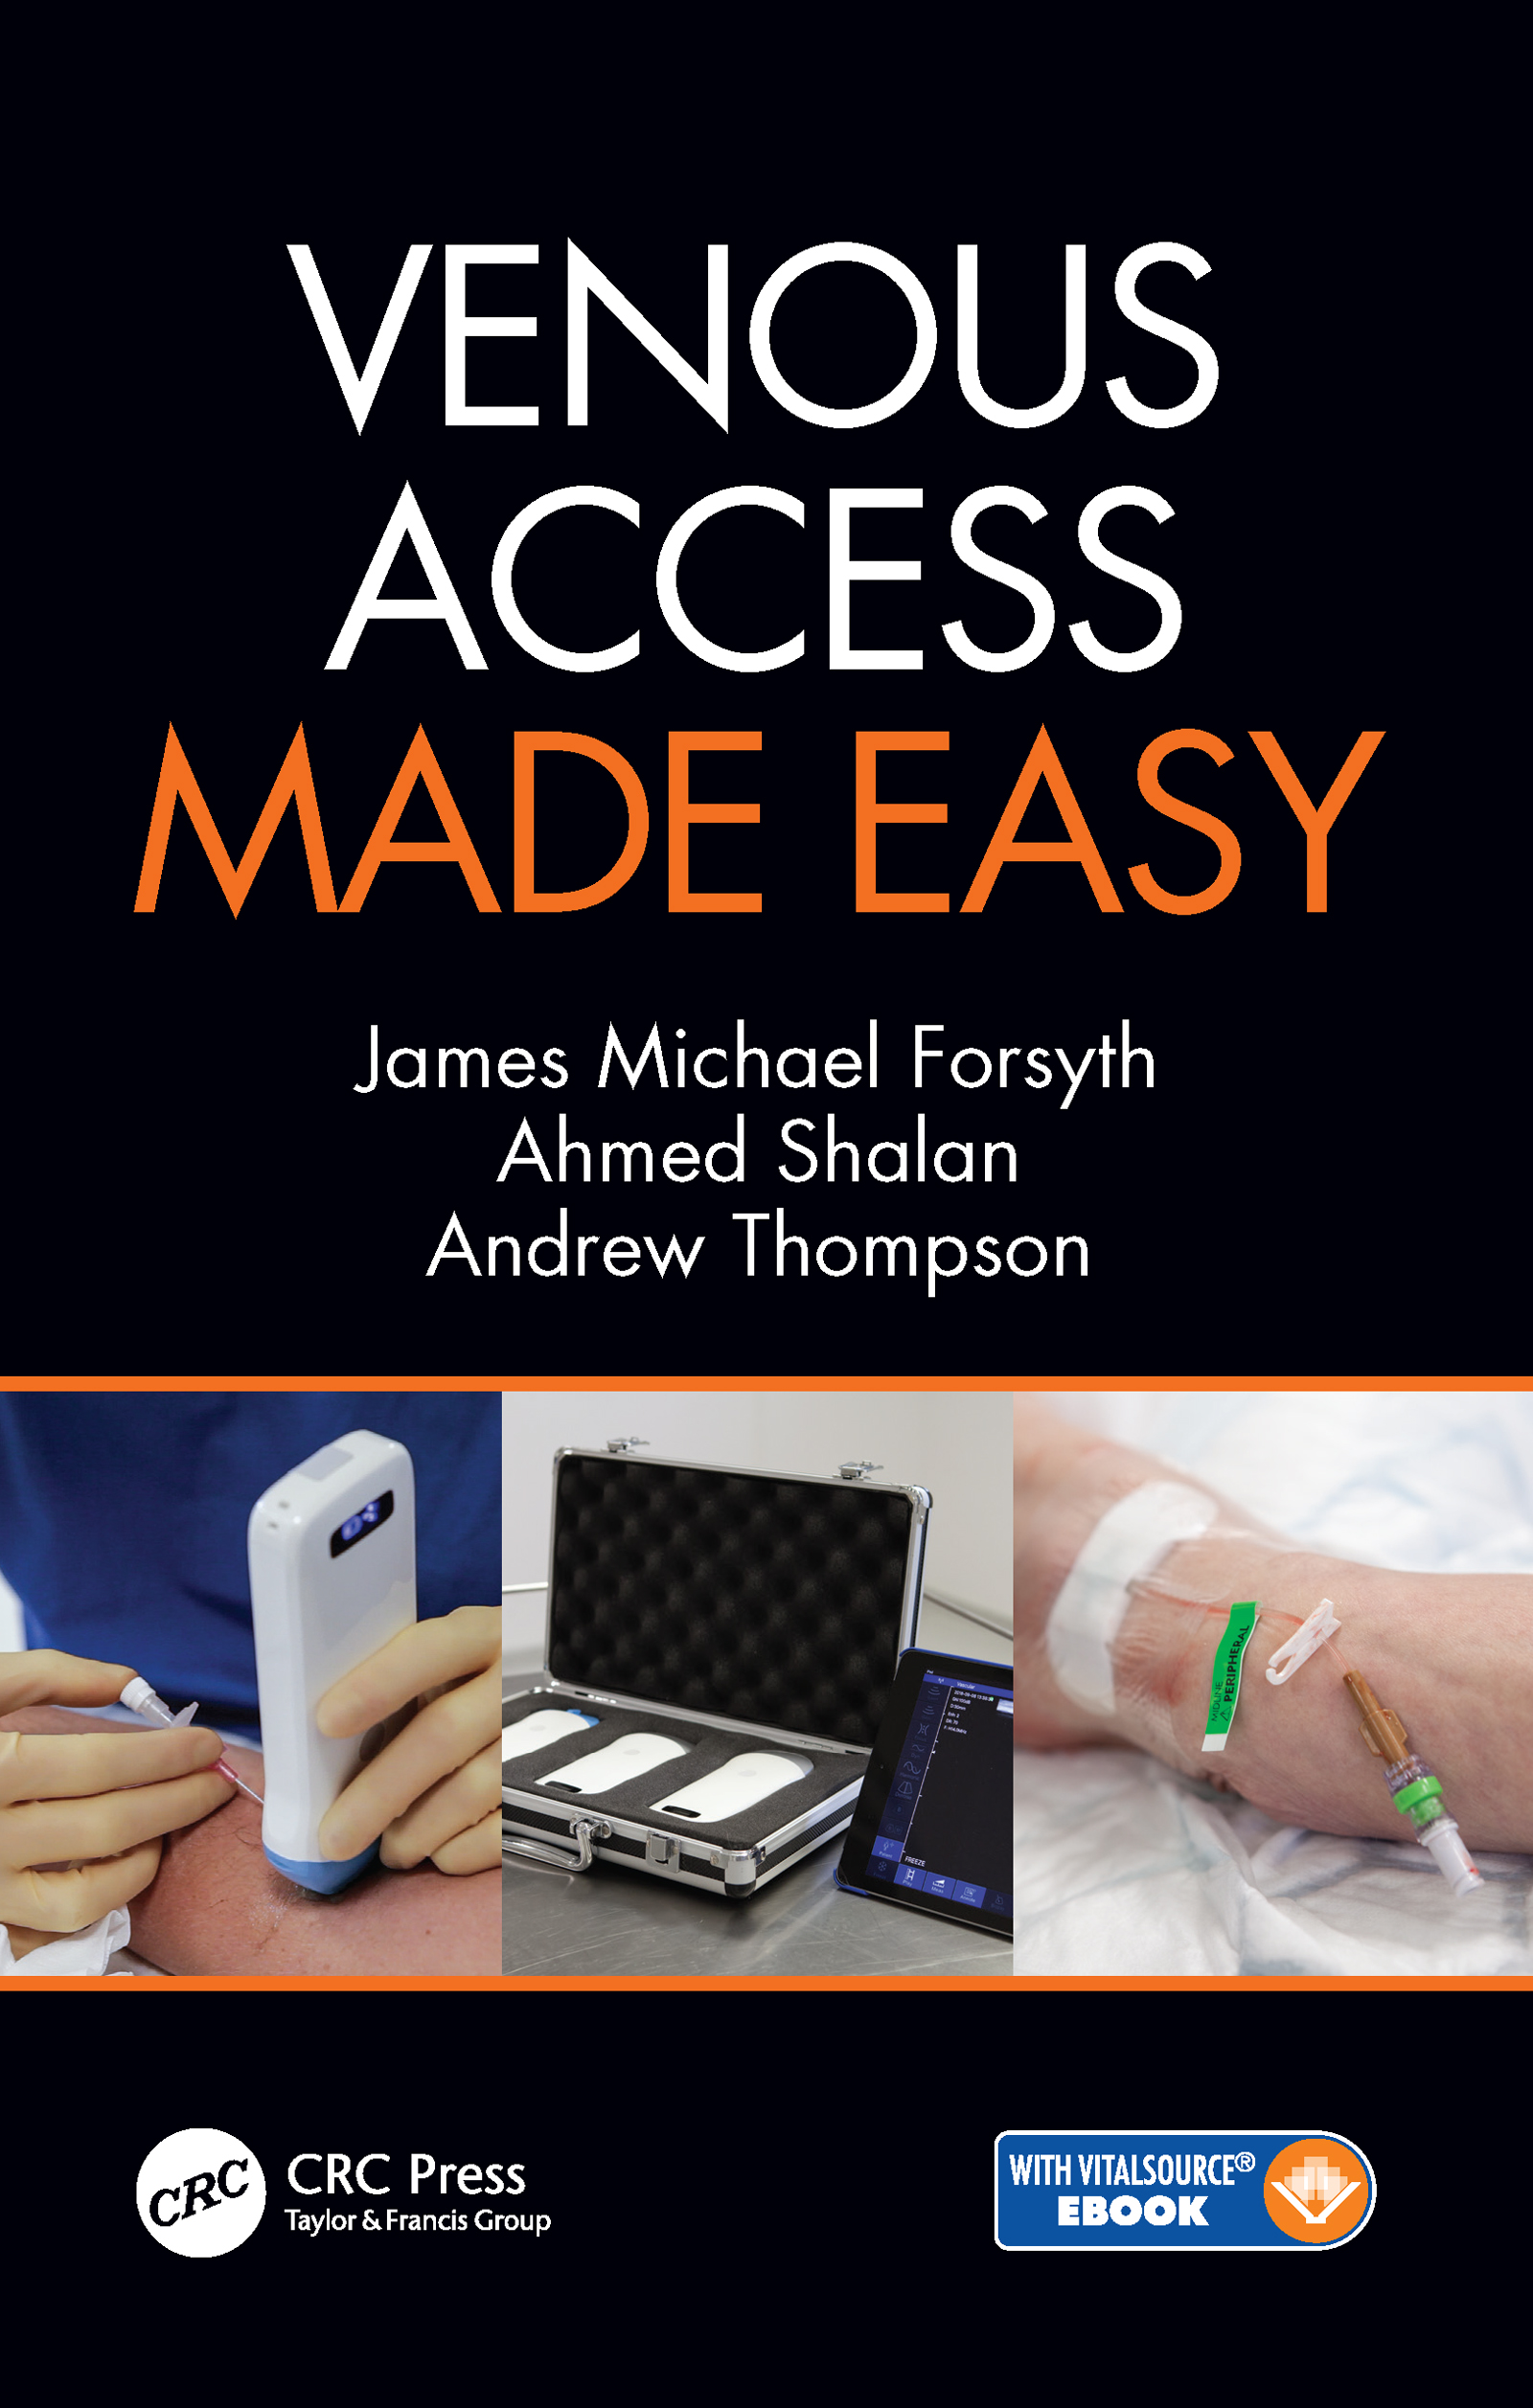 Venous Access Made Easy book cover